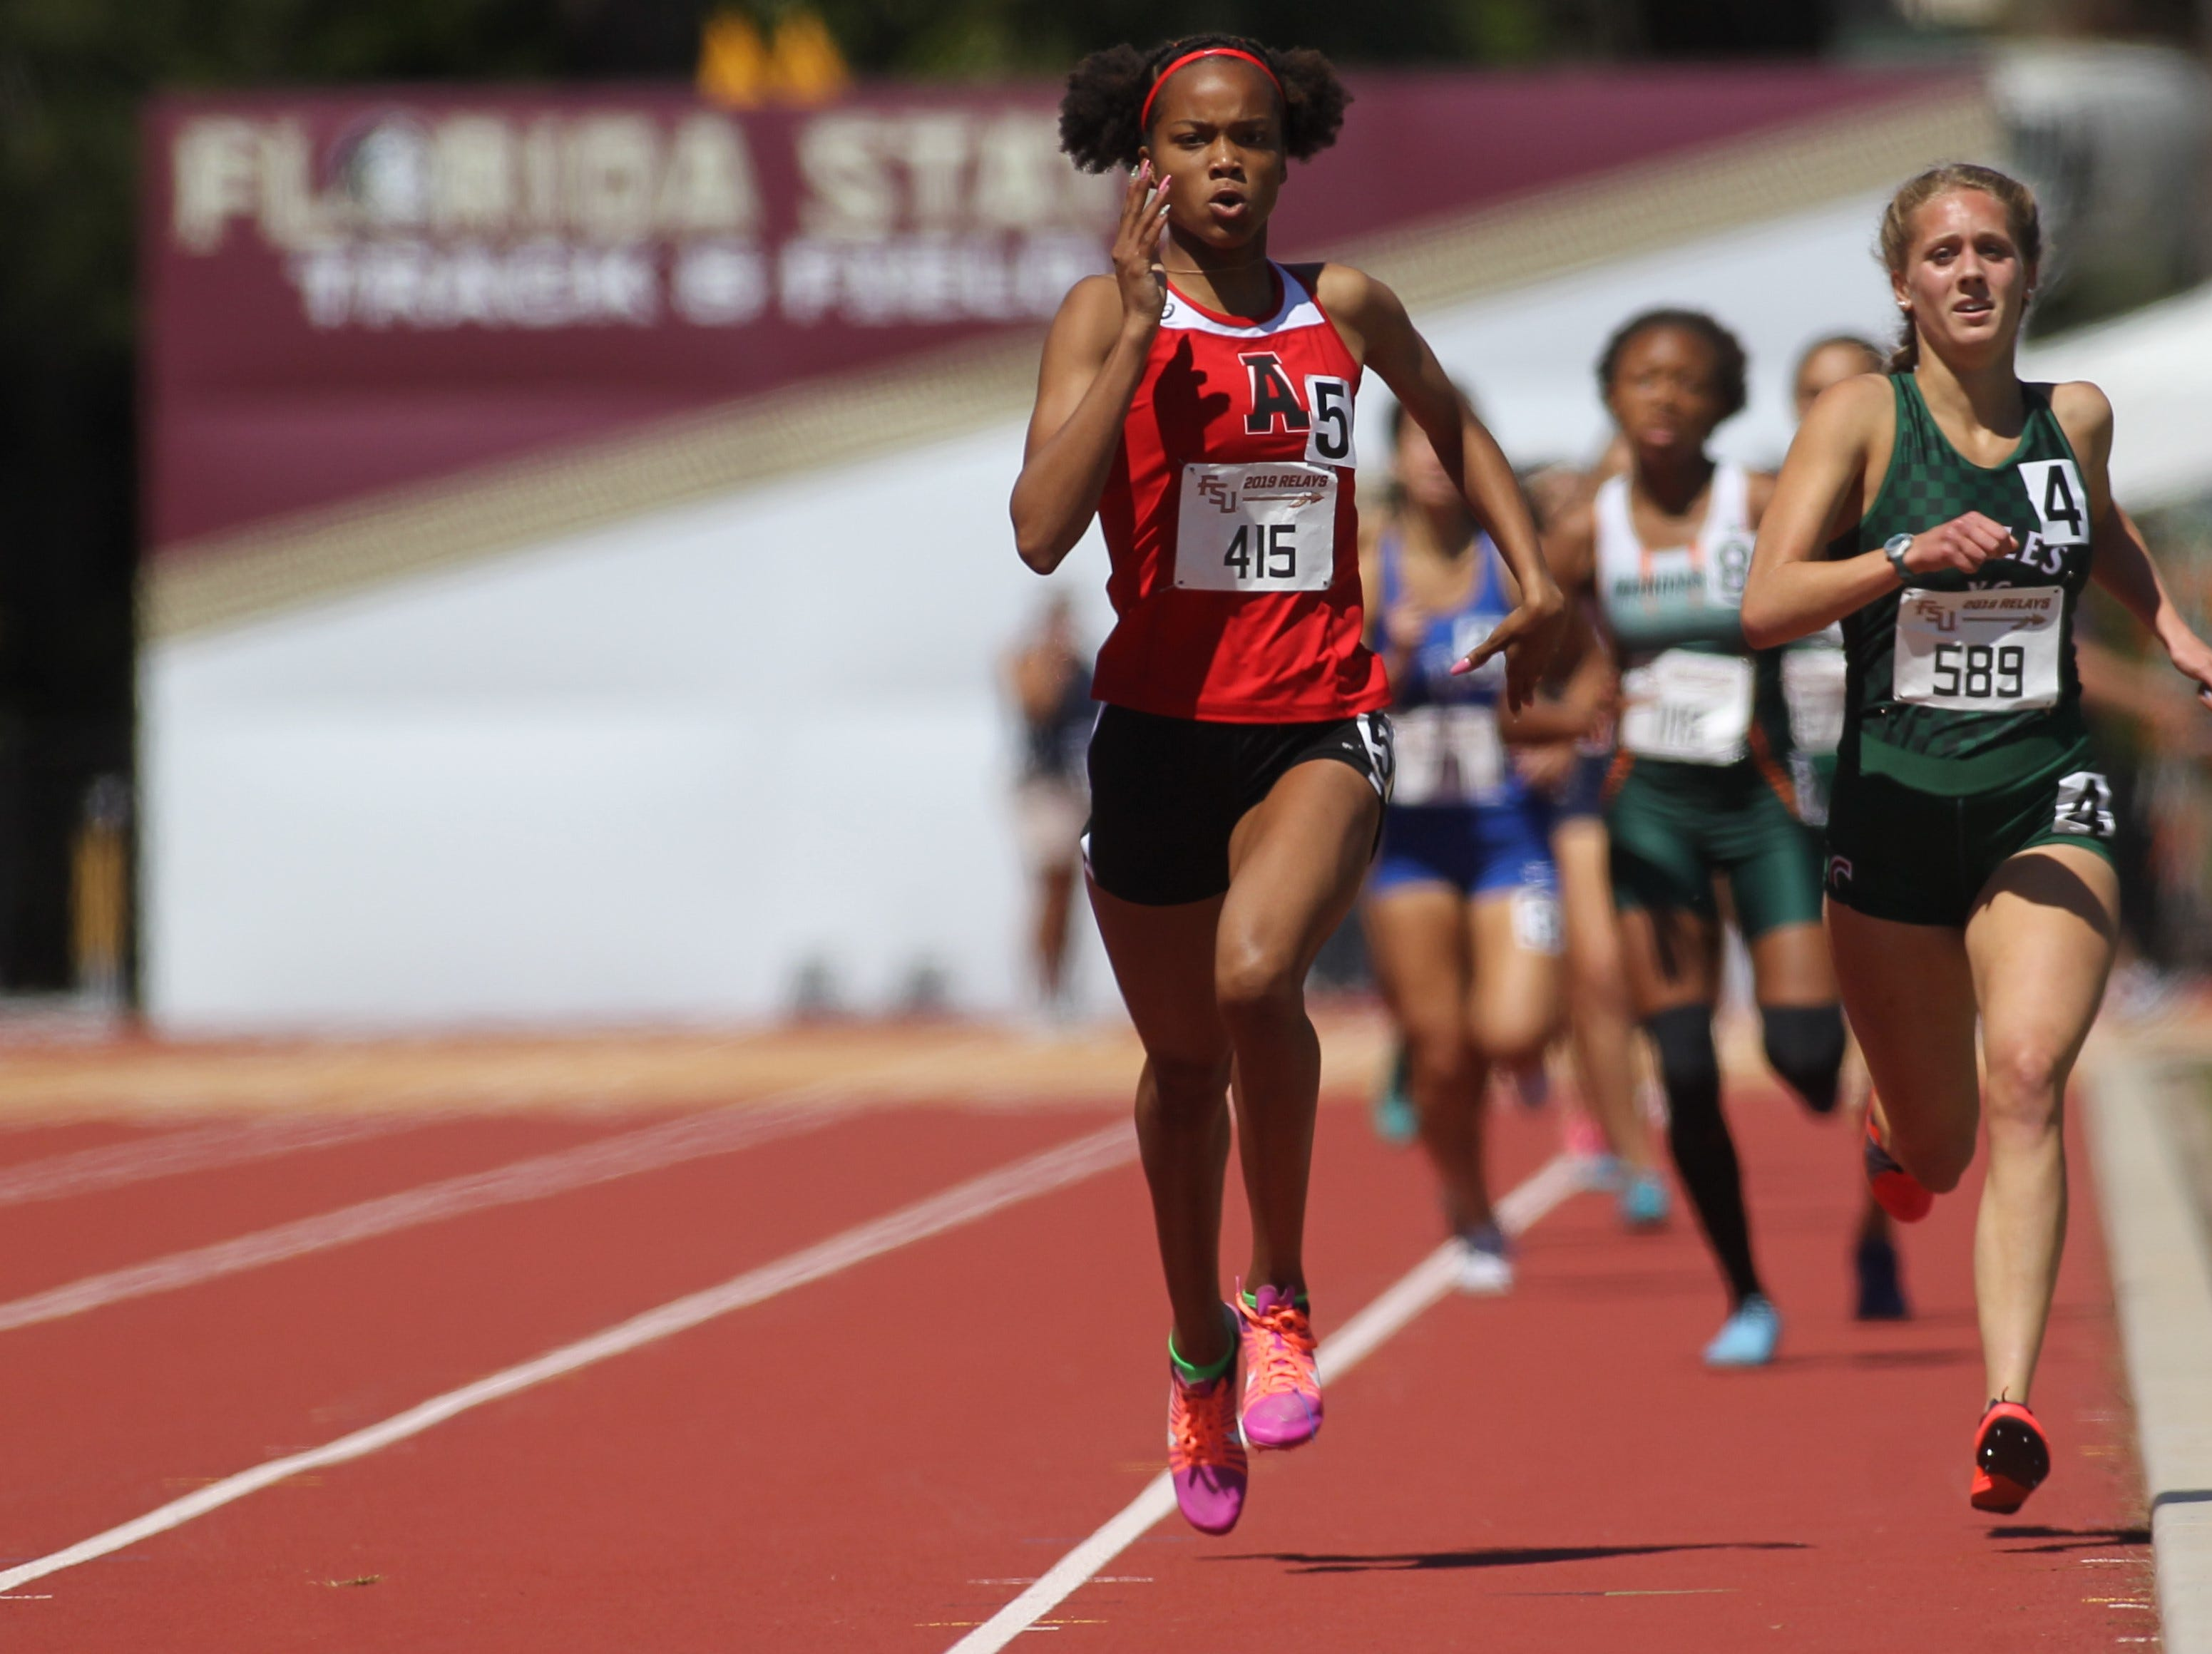 Chiles junior Caitlin Wilkey tries to catch Alexander's Jazzmin Taylor on the final stretch of the 800-meter run during the FSU Relays at Mike Long Track on Friday, March 22, 2019.